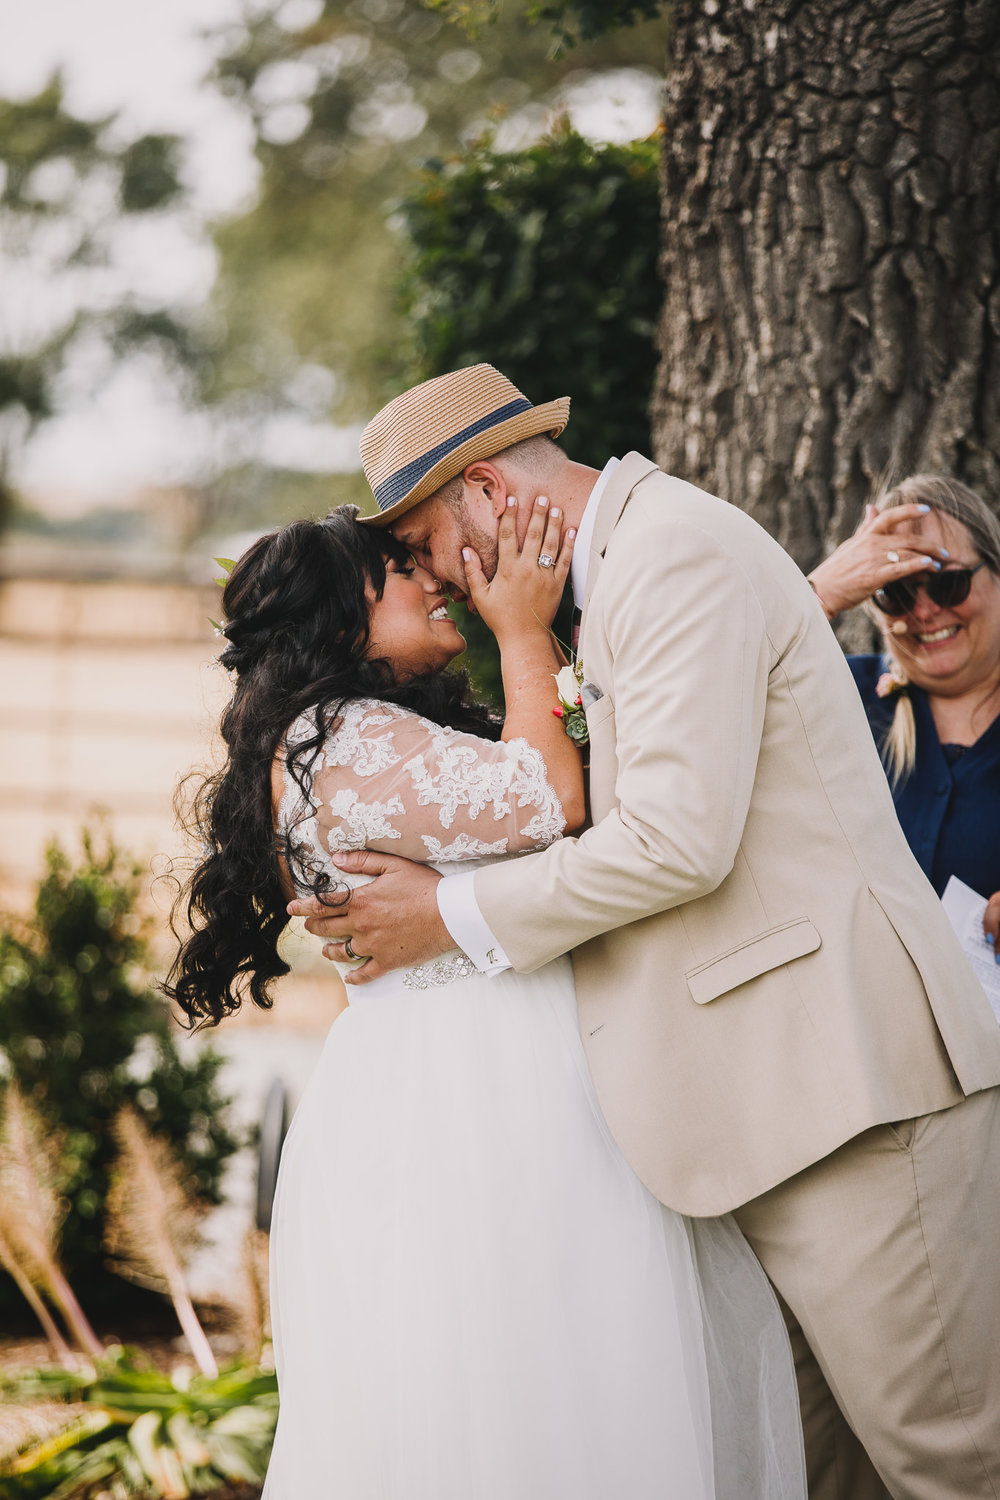 Archer Inspired Photography Fitz Place San Martin Wedding Lifestyle Documentary Affordable Photographer South Bay-223.jpg